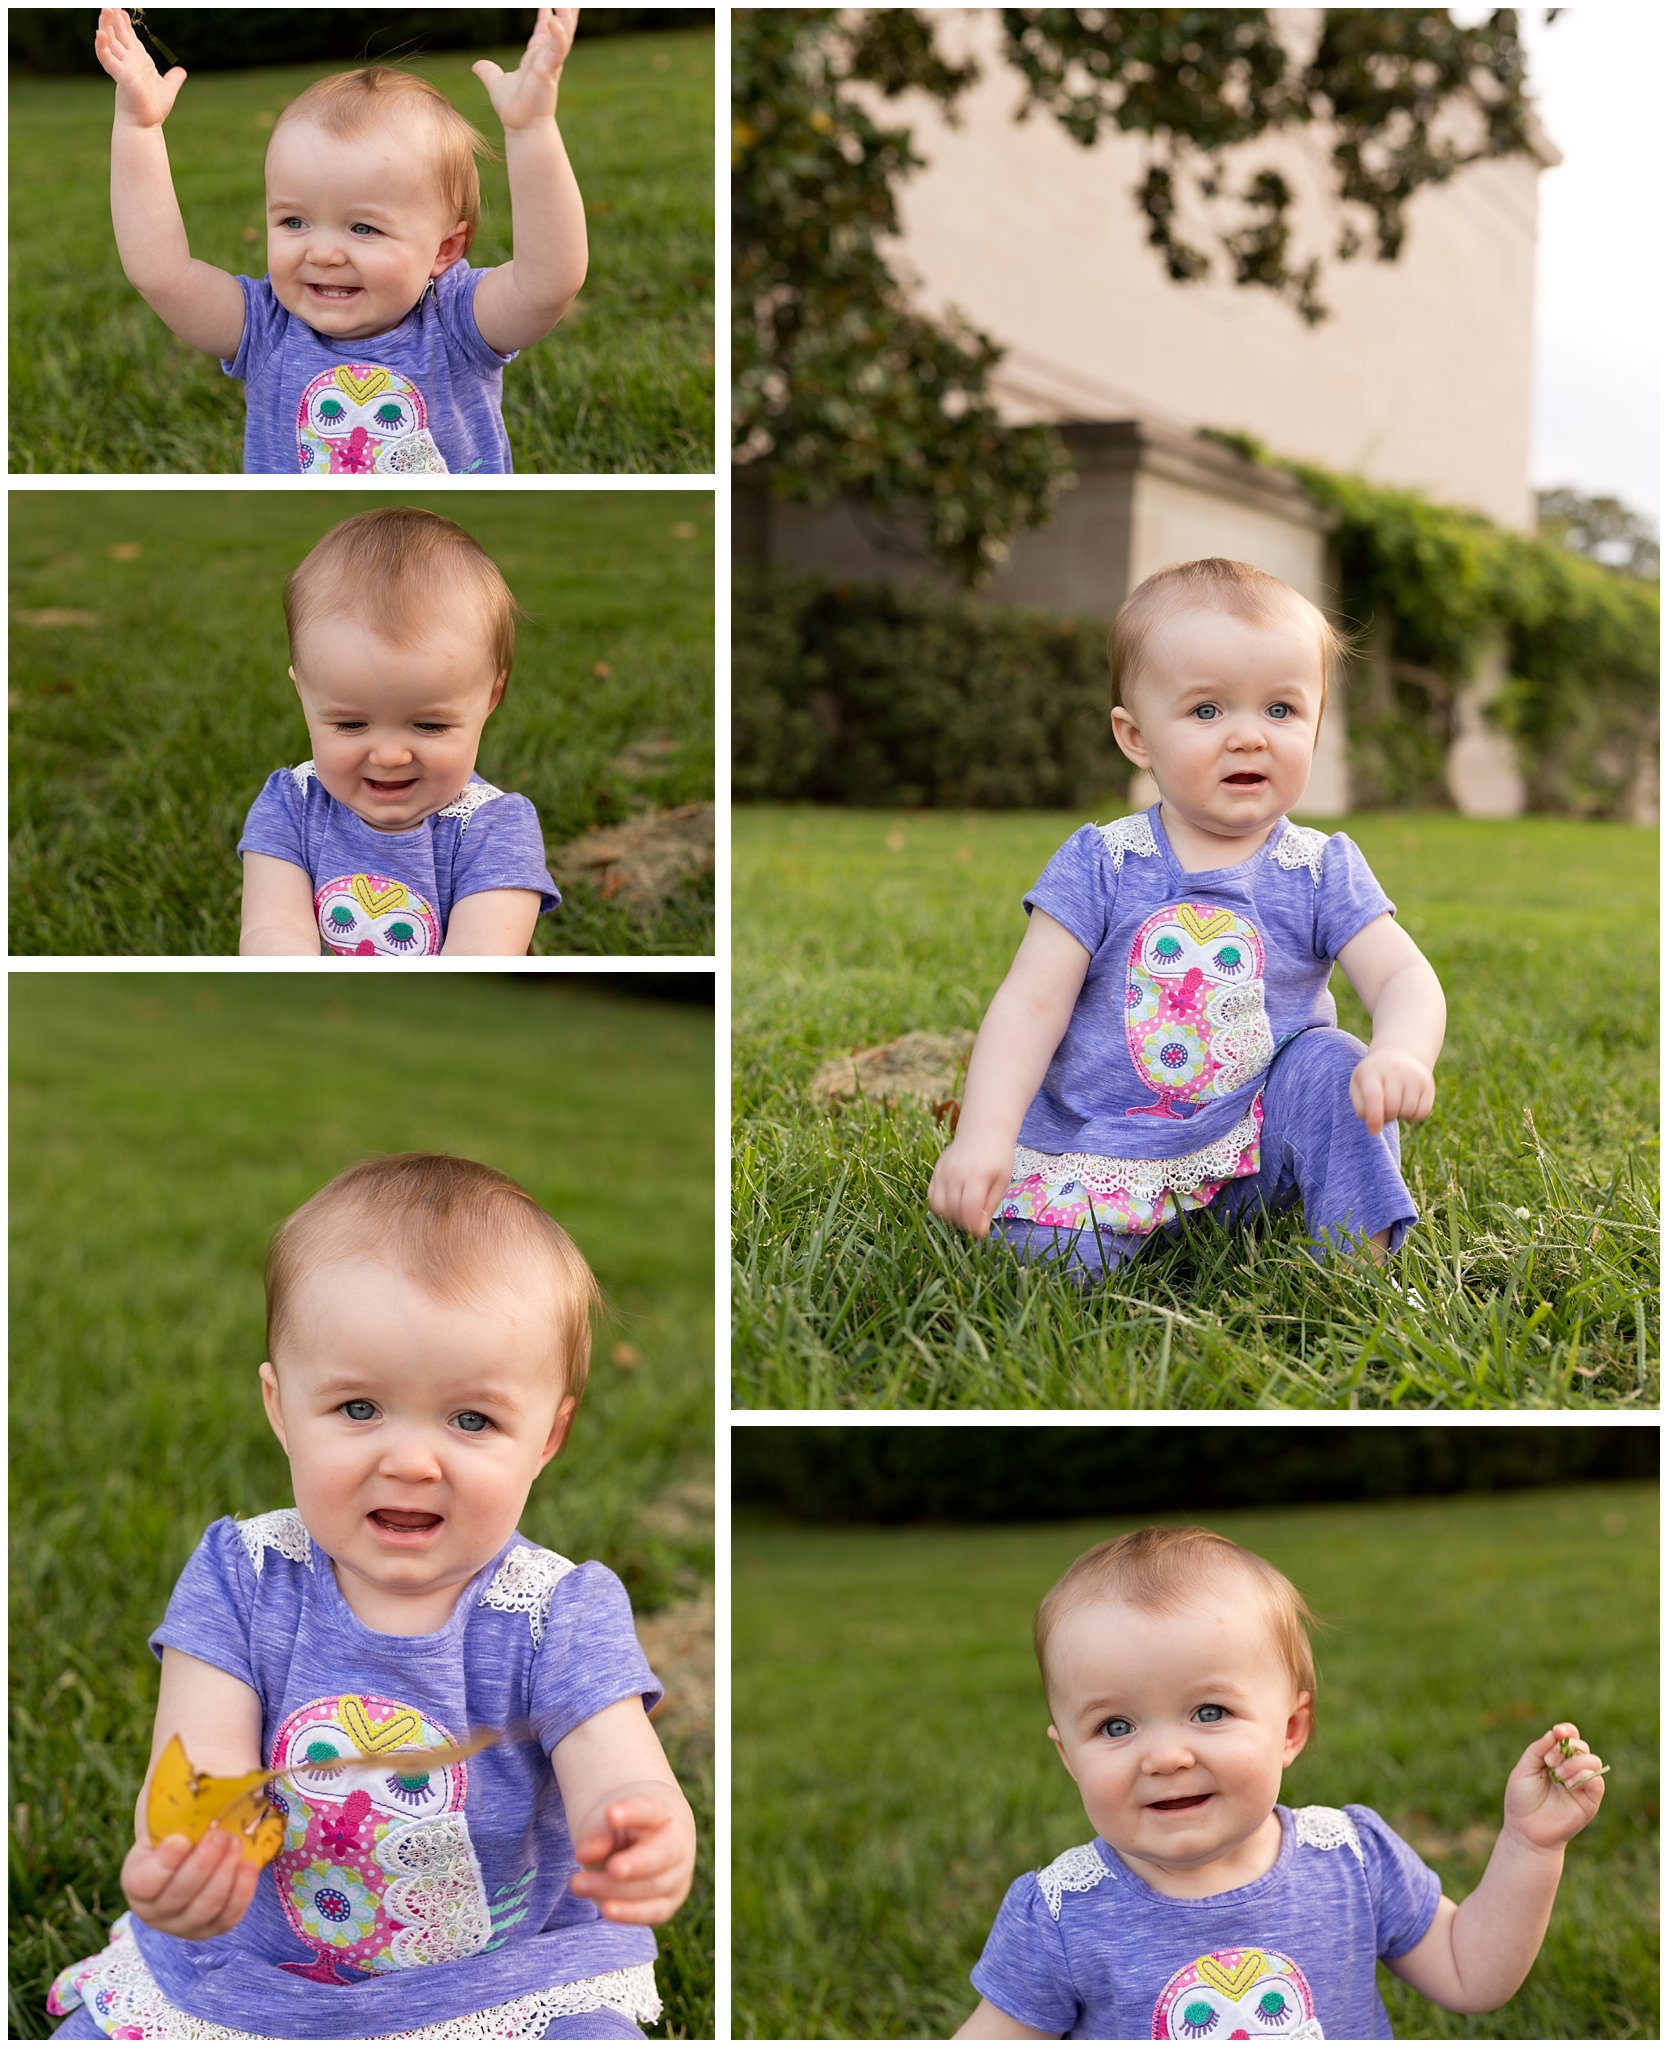 One year old girl playing in grass